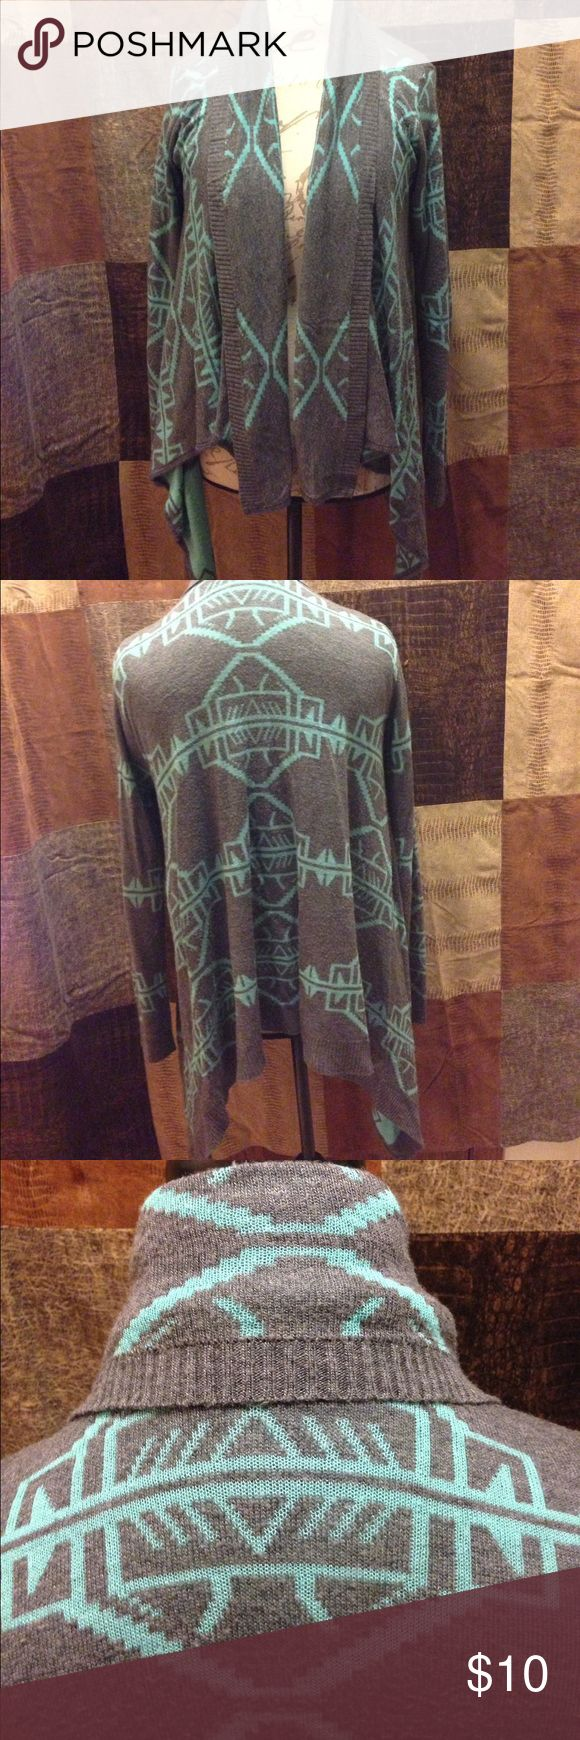 Aztec Print Sweater Cardigan Size Medium Beautiful Blue and Grey Aztec Print Cardigan Sweater. You can dress this piece up or down. In Good Used Condition. Tops